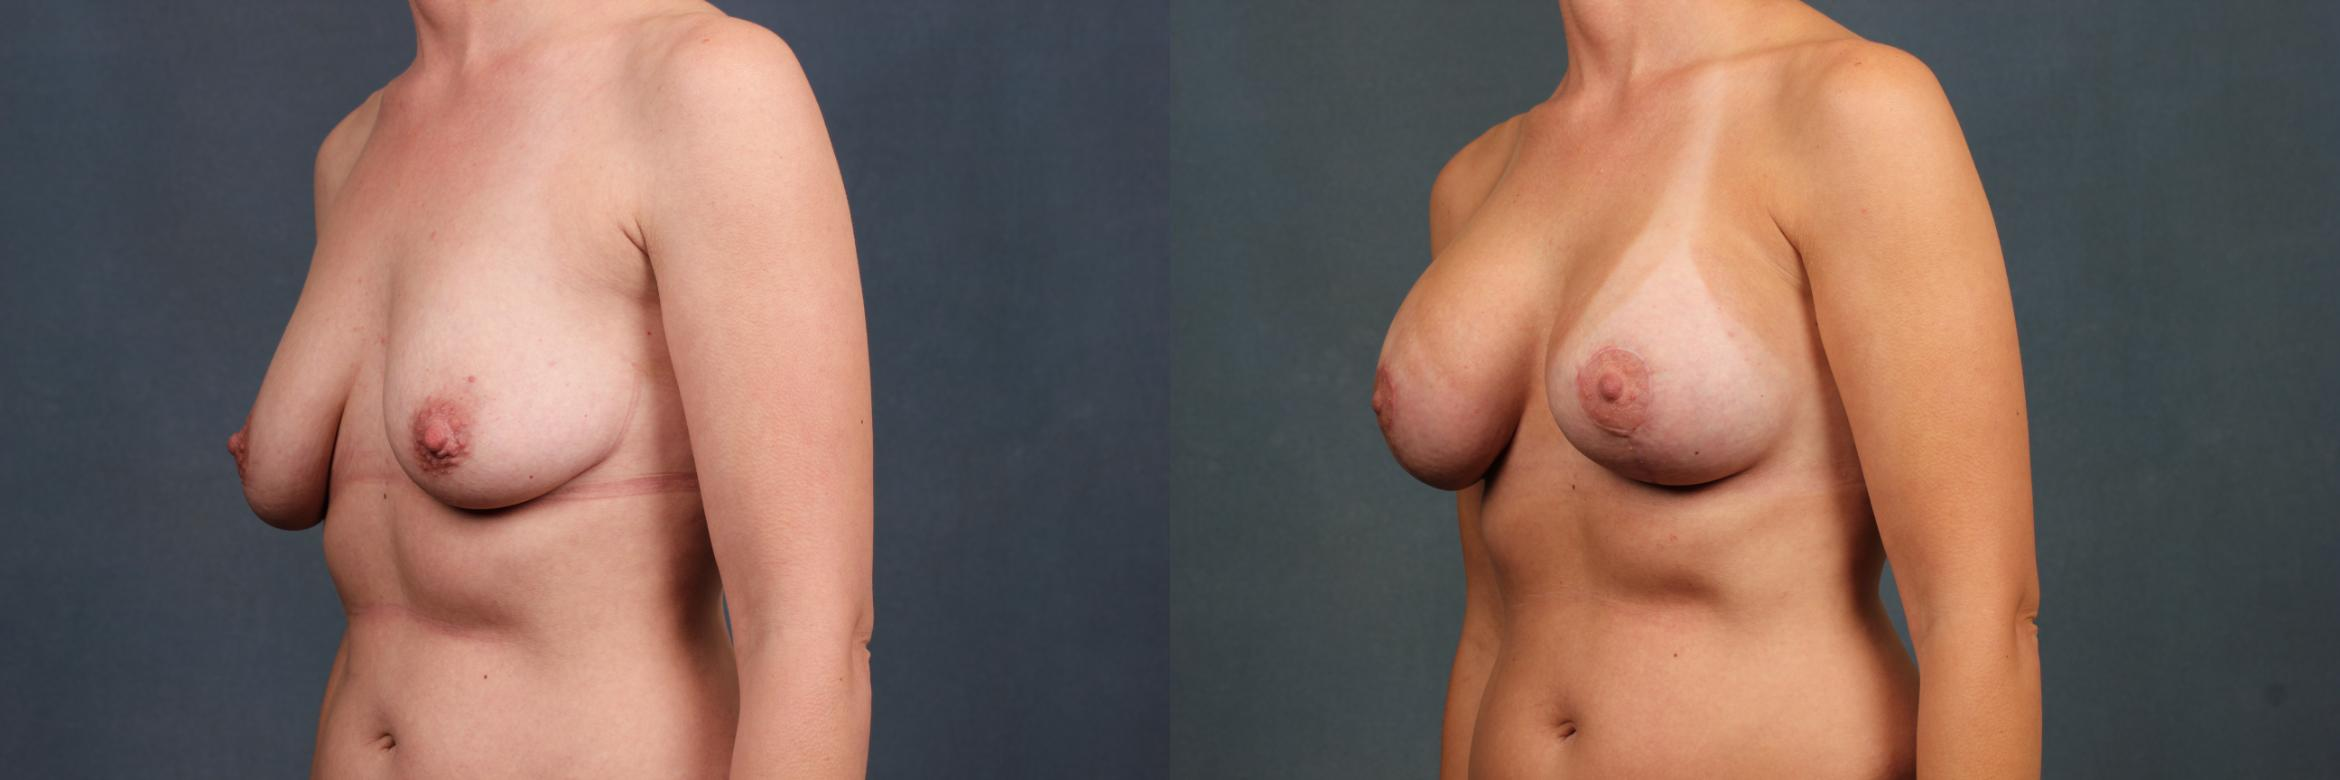 Lift Case 427 Before & After View #2 | Louisville, KY | CaloAesthetics® Plastic Surgery Center